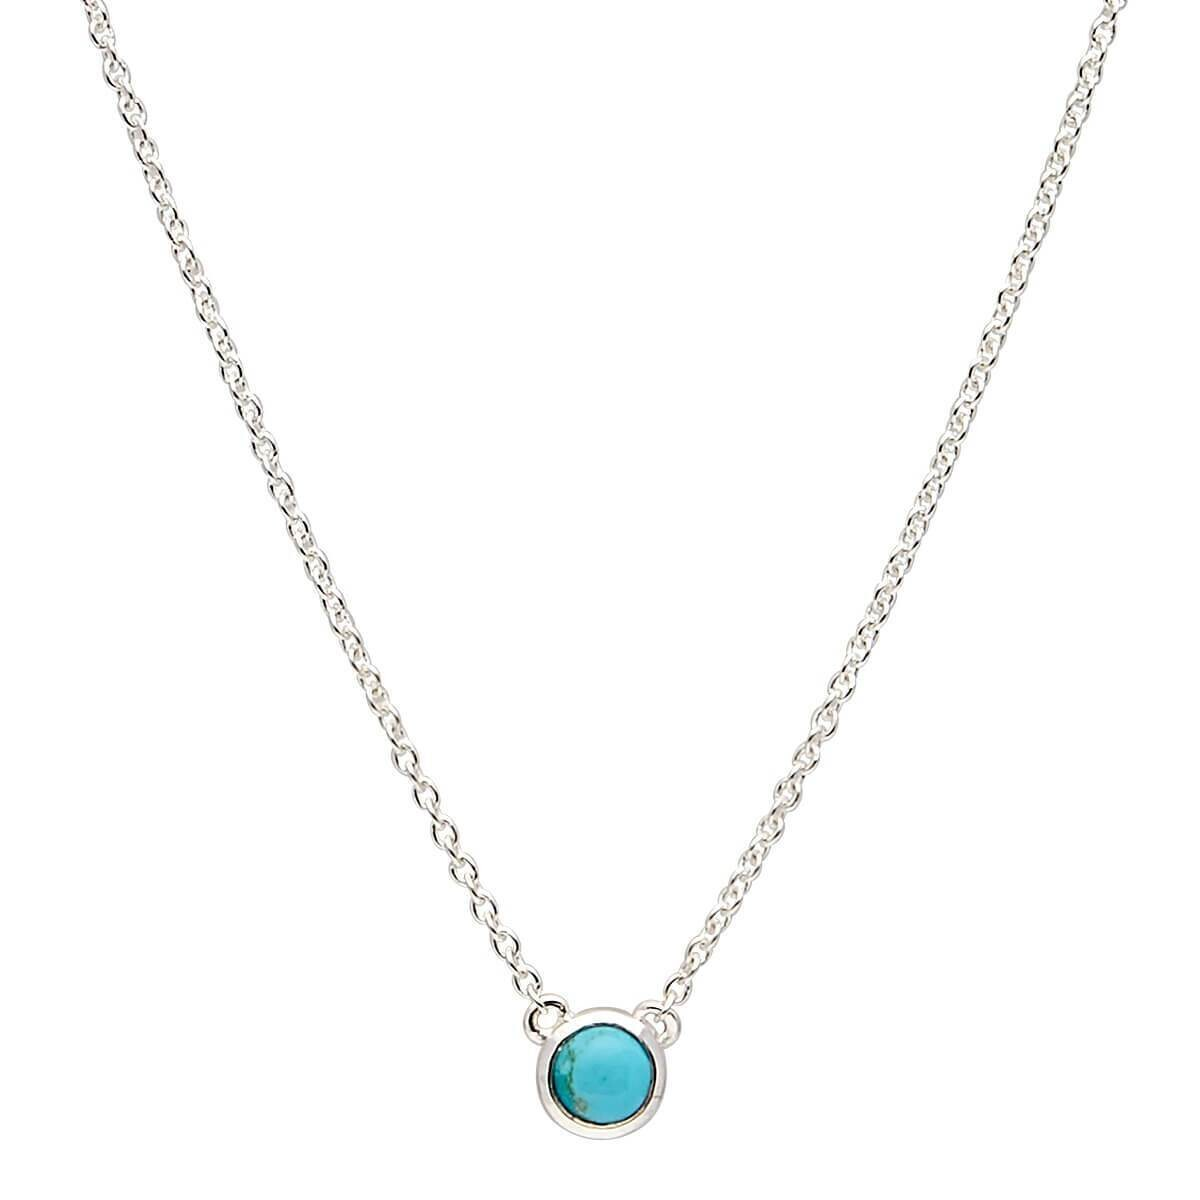 Najo - Heavenly Turquoise Silver Necklace